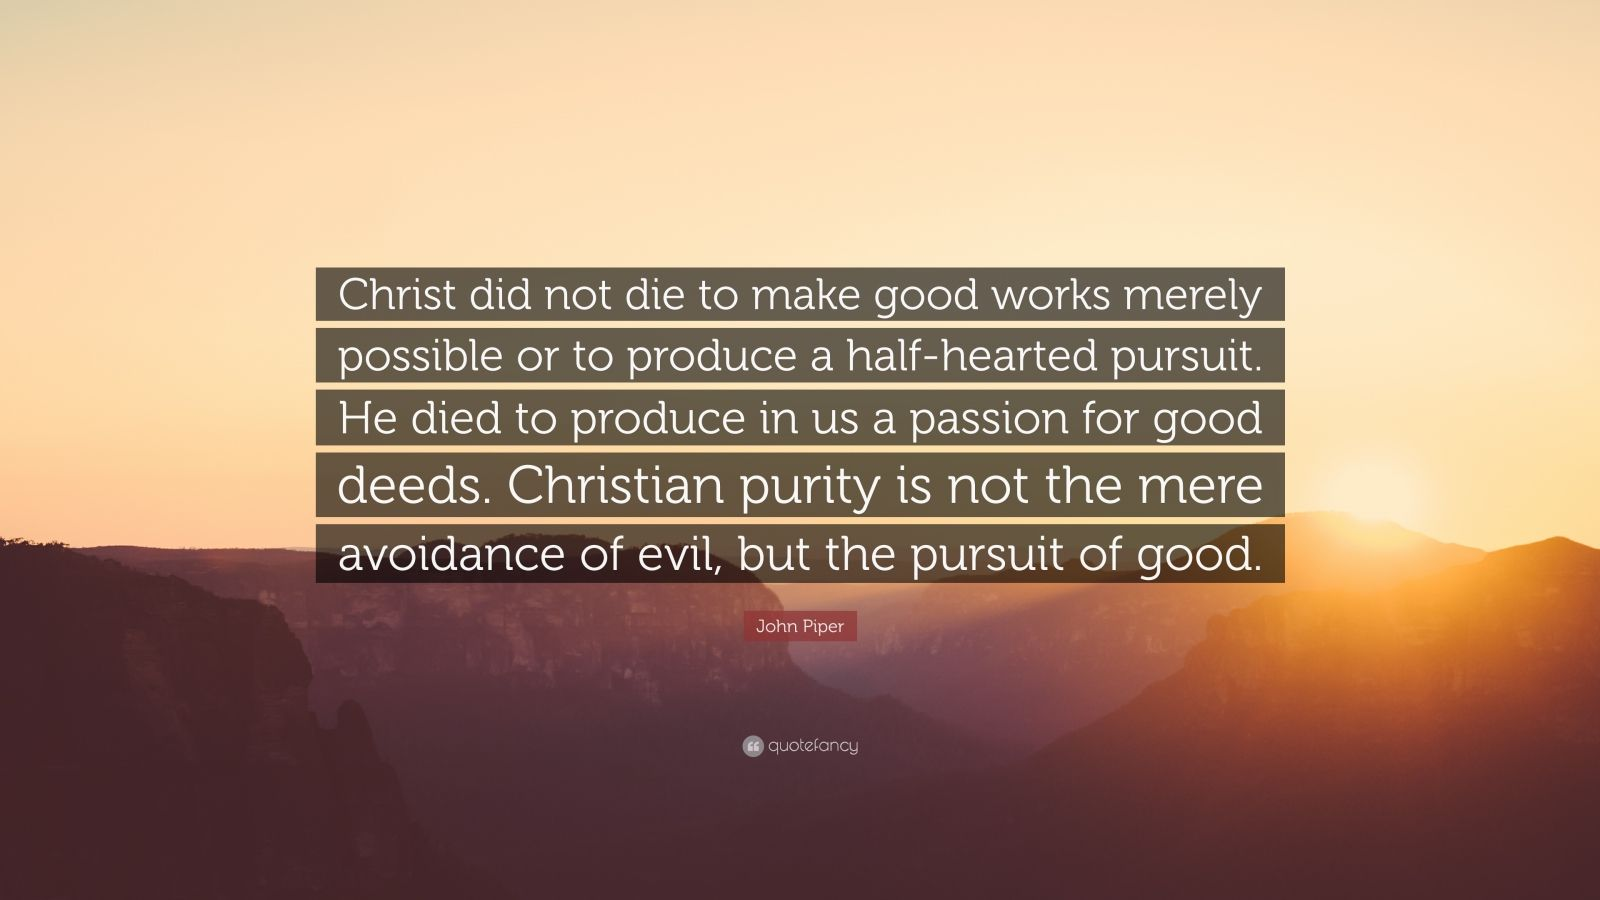 """John Piper Quote: """"Christ did not die to make good works merely possible or to produce a half-hearted pursuit. He died to produce in us a passion for good deeds. Christian purity is not the mere avoidance of evil, but the pursuit of good."""""""